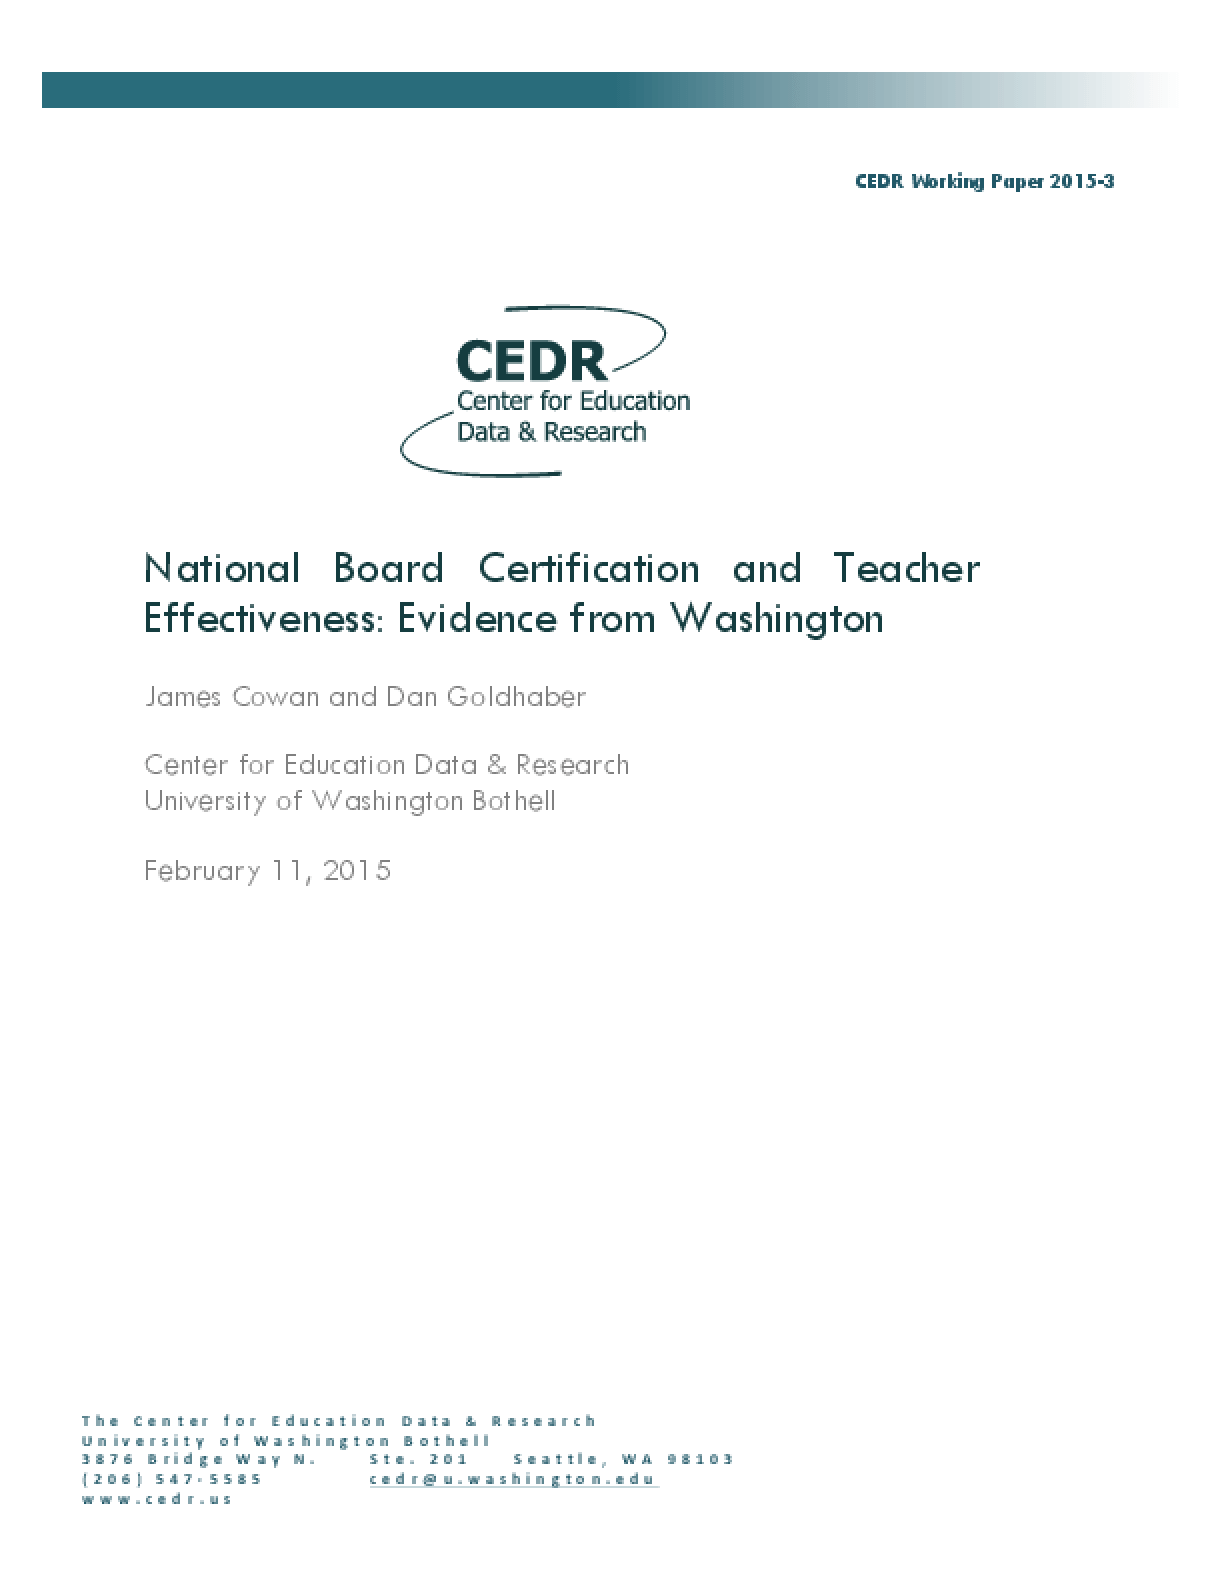 National Board Certification and Teacher Effectiveness: Evidence from Washington